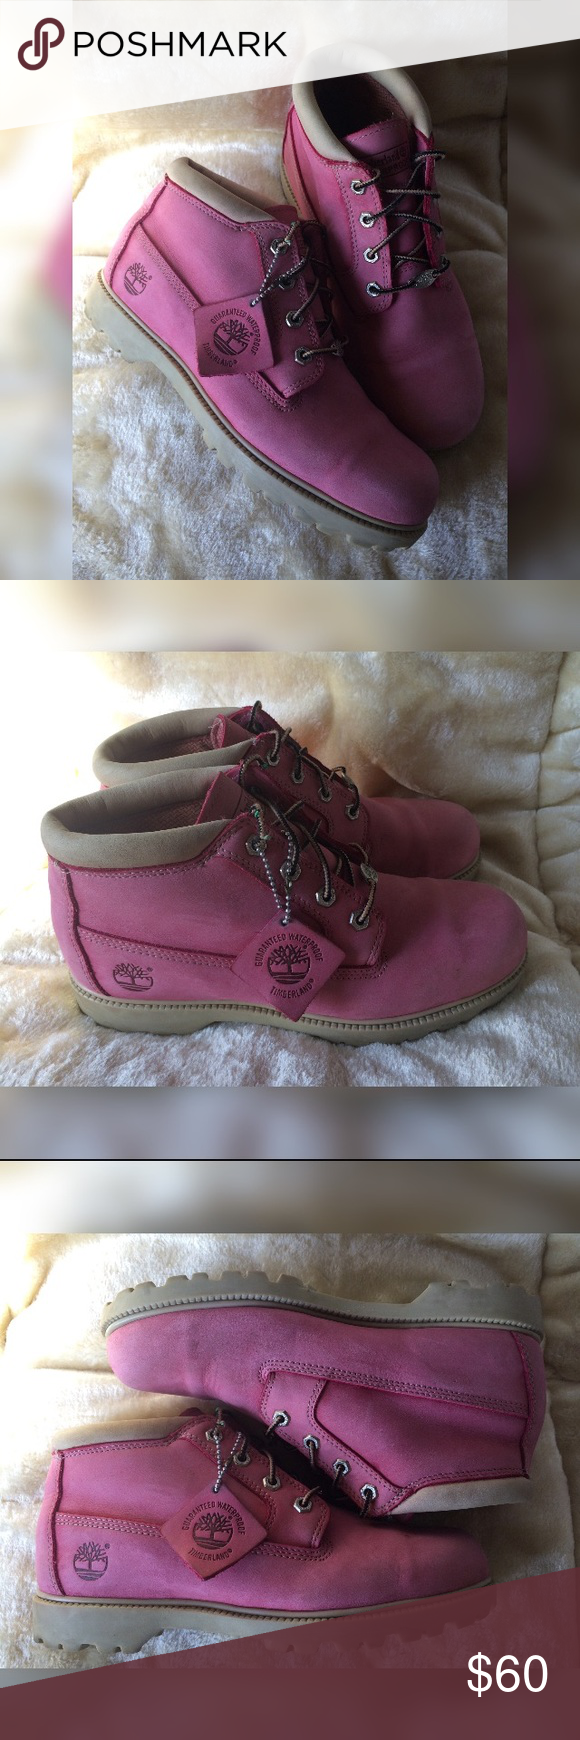 b120b488c3b27 Pink Nellie Timberlands Woman's size 10 bubblegum pink Nellie waterproof  chukka timberland boots, with cream/ off white details and rubber.